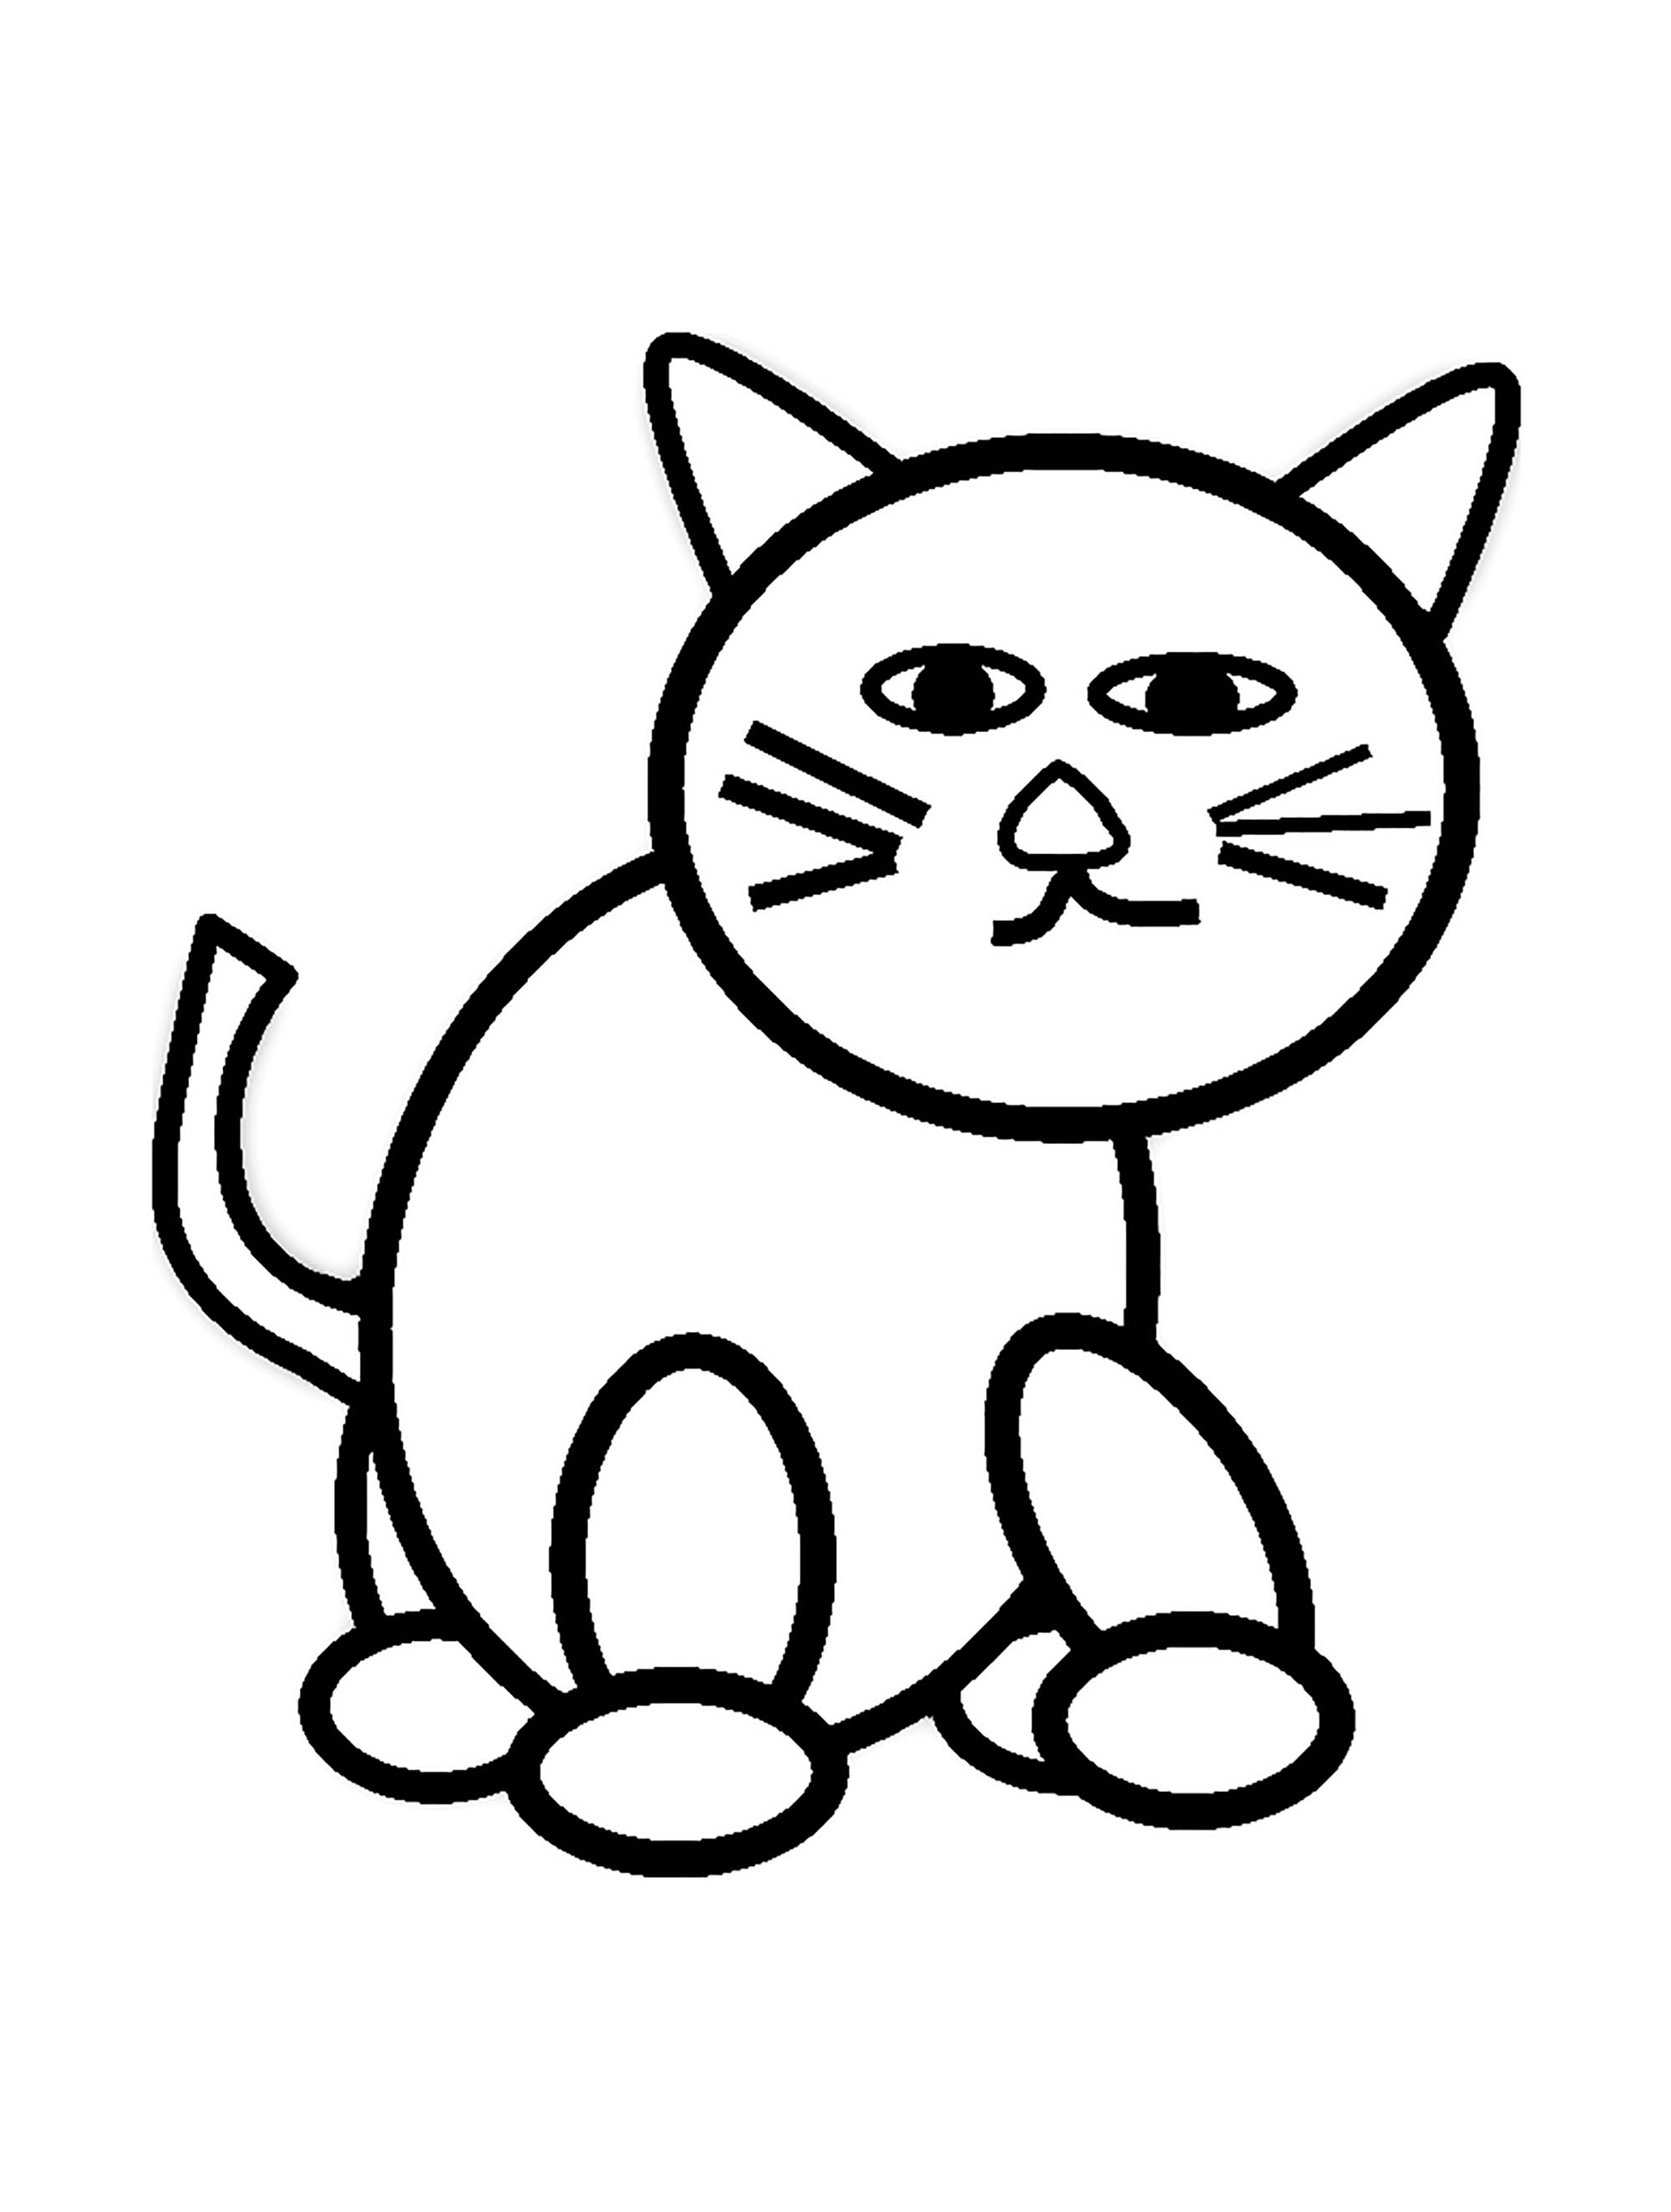 coloring cat pages cat for kids simple drawing cats kids coloring pages pages coloring cat